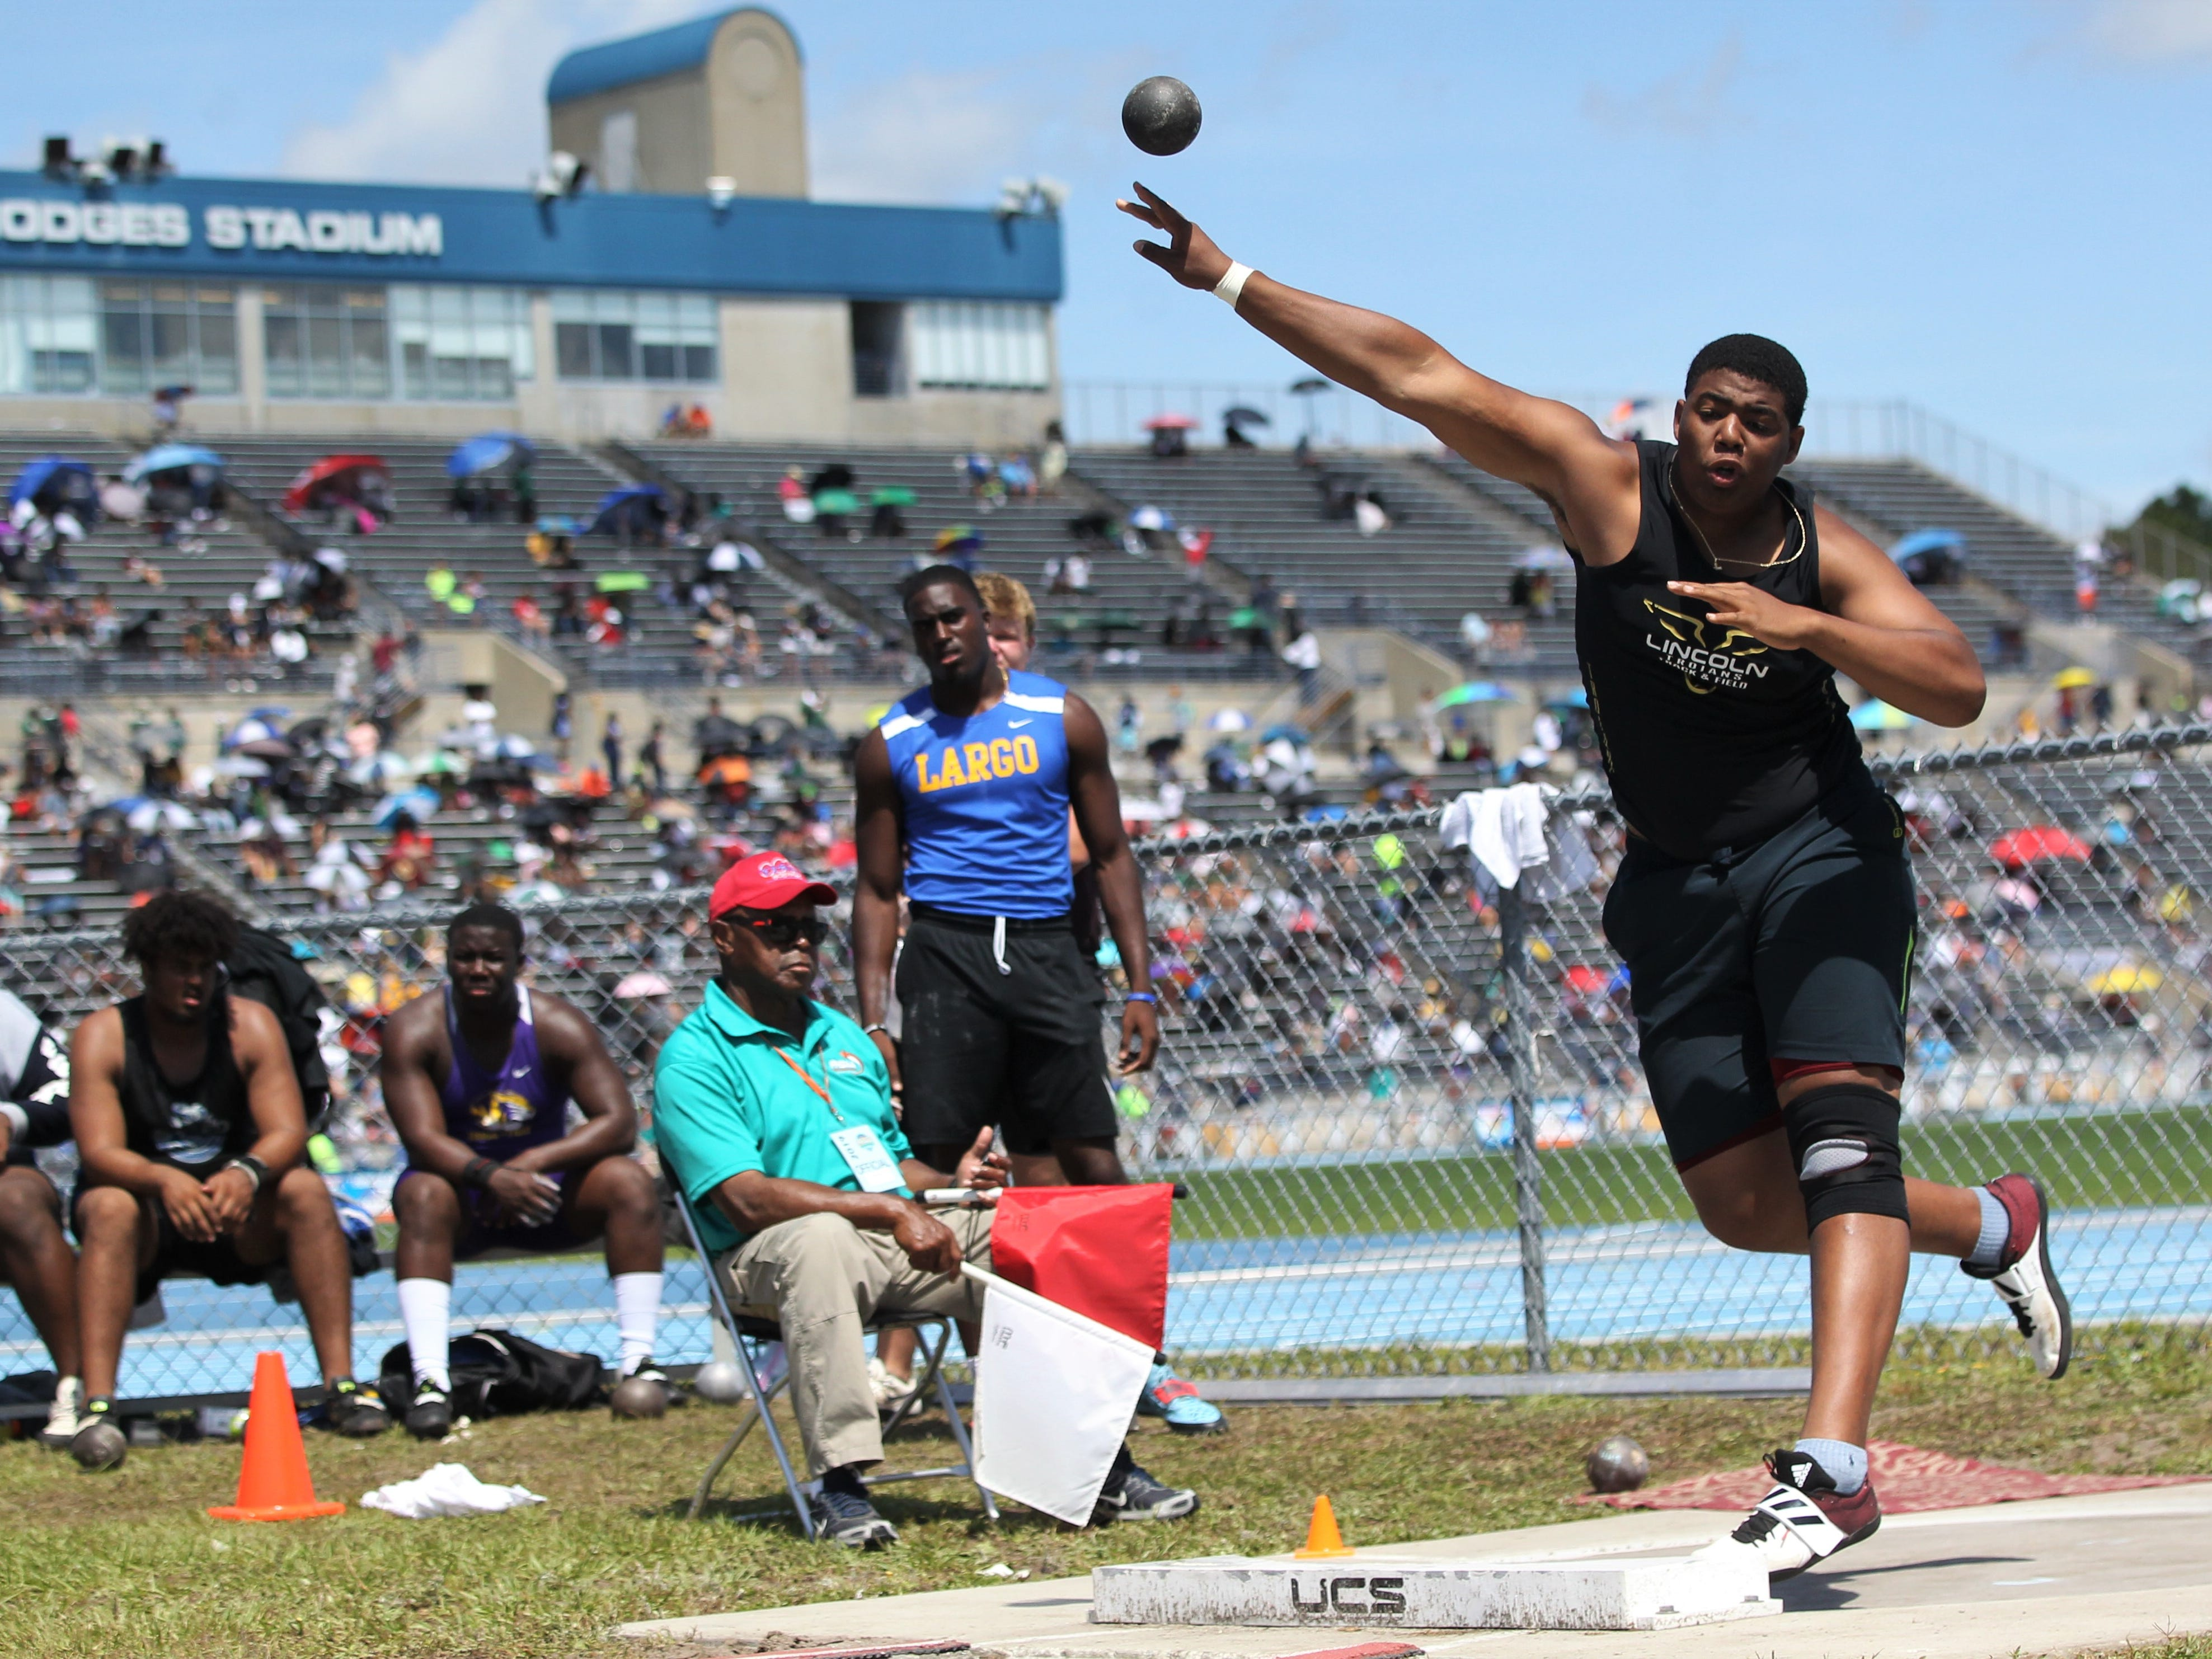 Lincoln junior Tyren Hannah took third in Class 3A shot put during the FHSAA Track and Field State Championships at UNF's Hodges Stadium in Jacksonville on May 4, 2019.